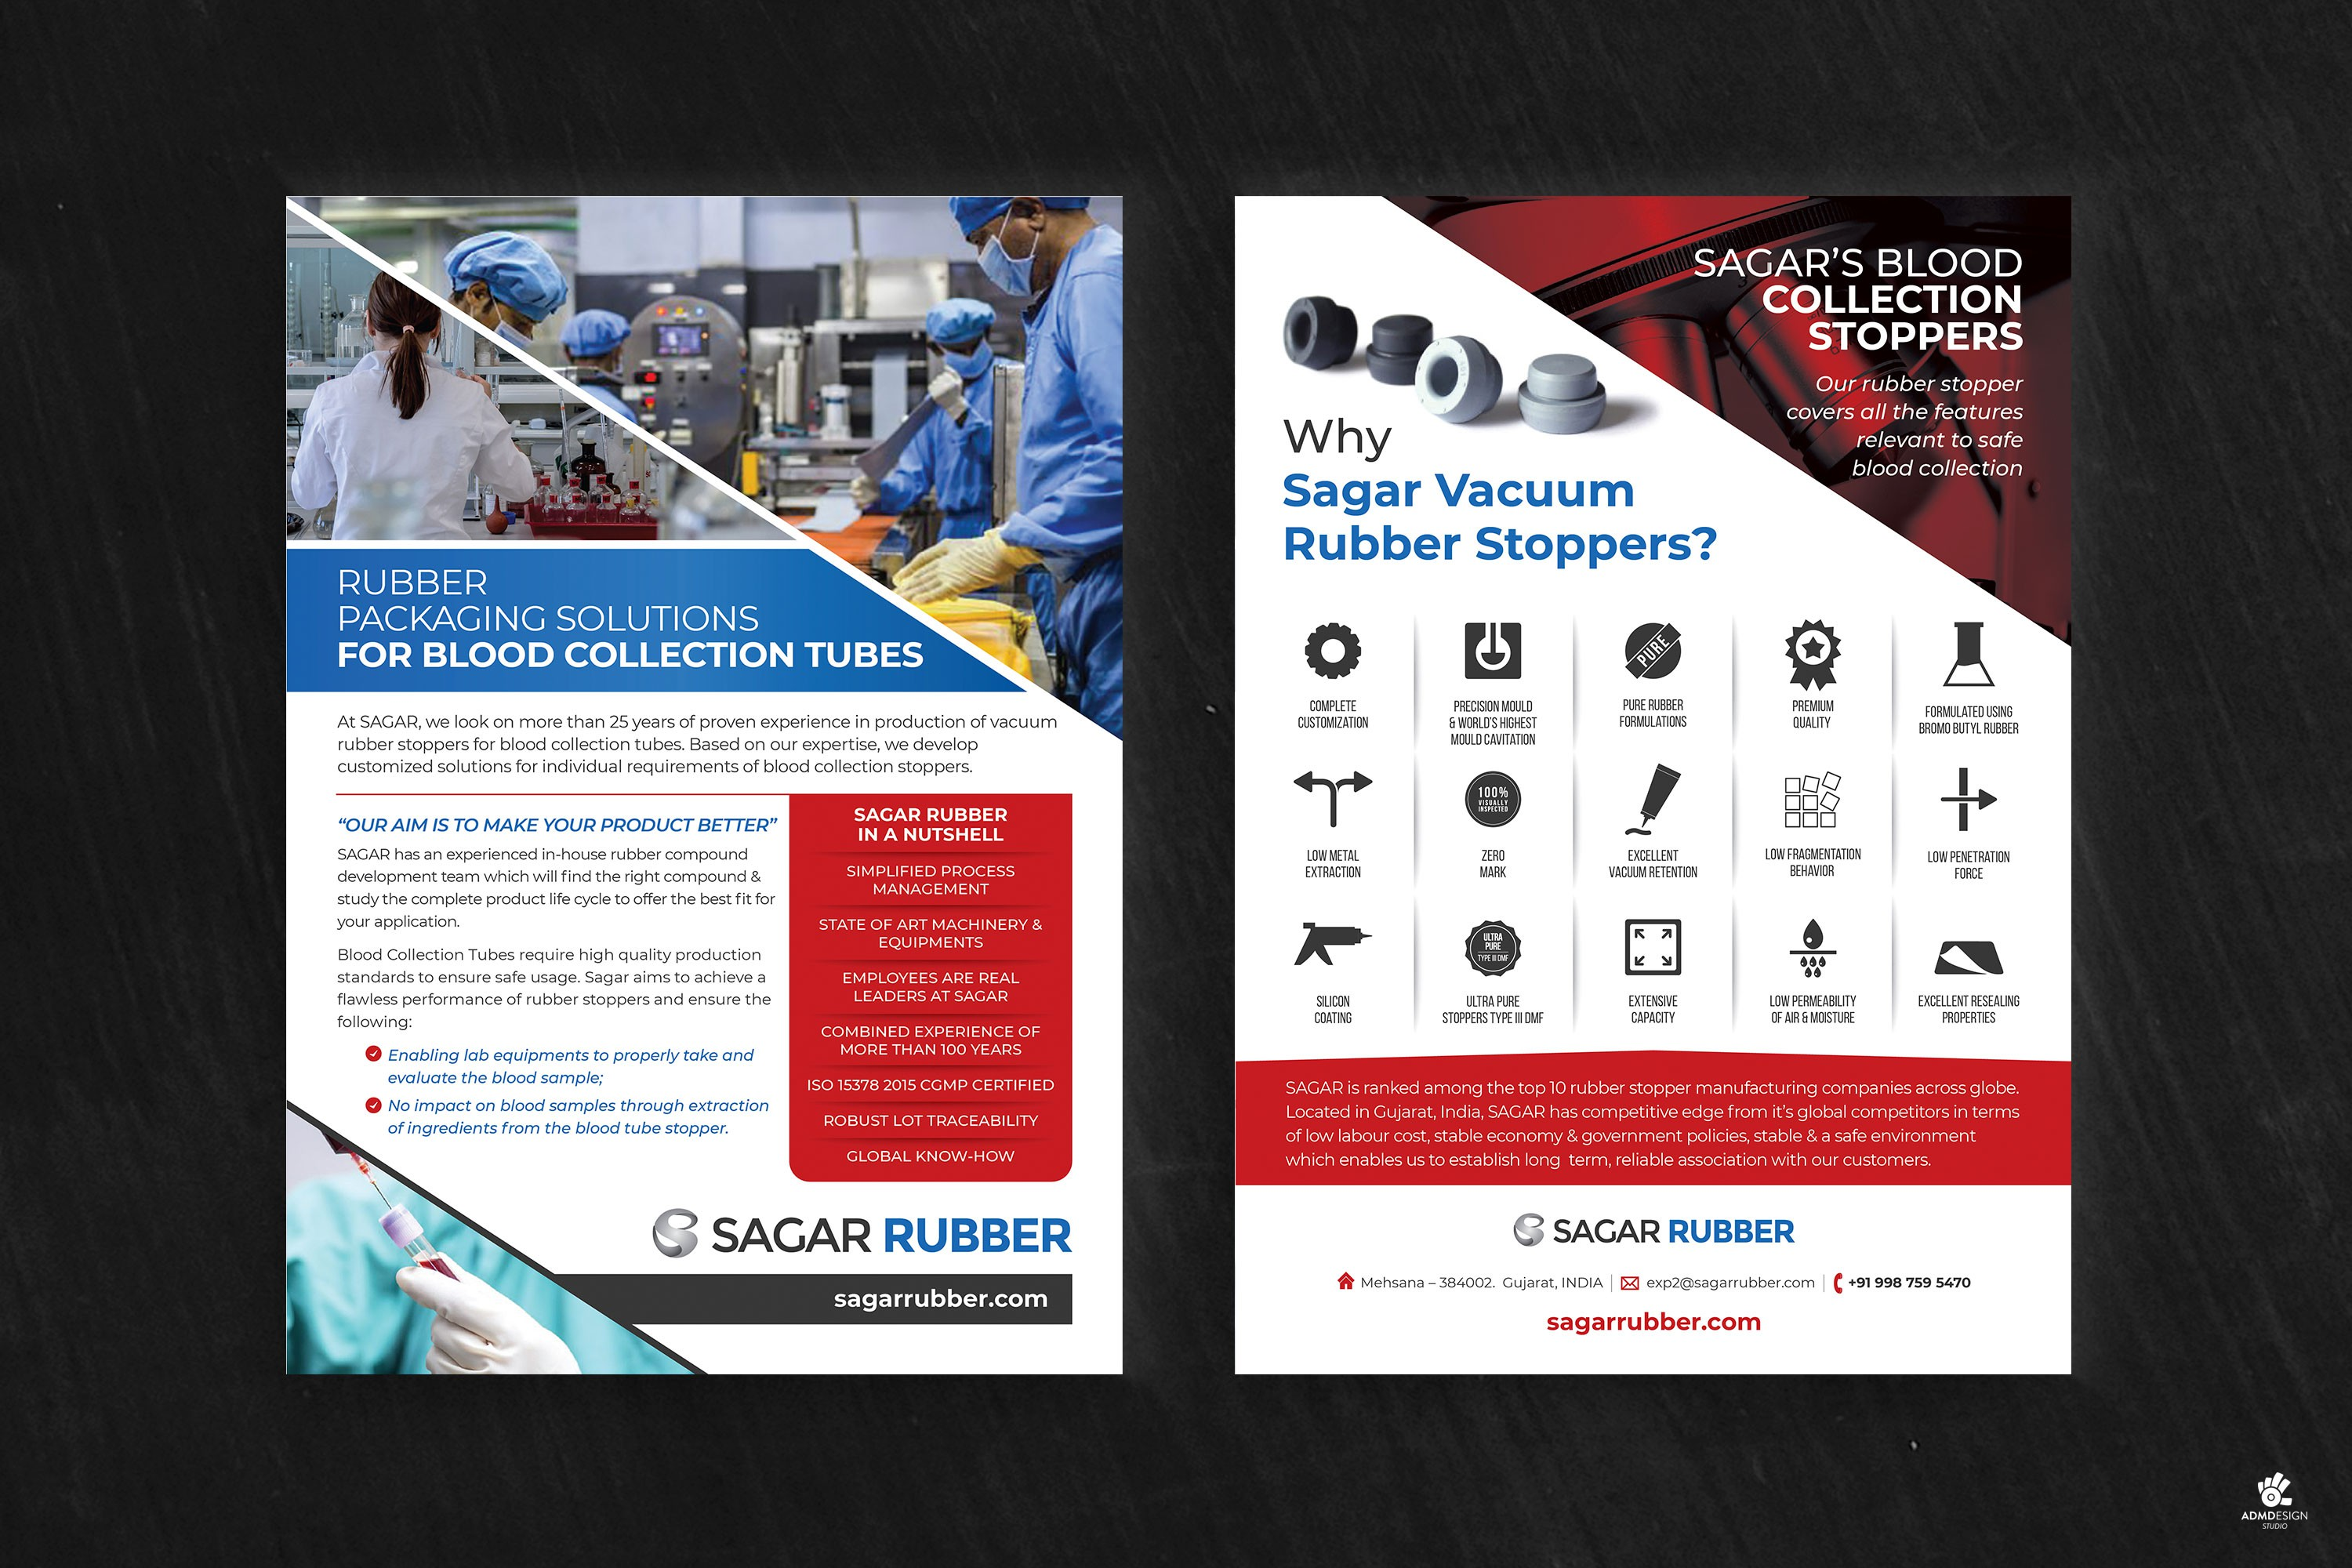 One Page leaflet design for Pharmaceutical Rubber Stopper Packaging